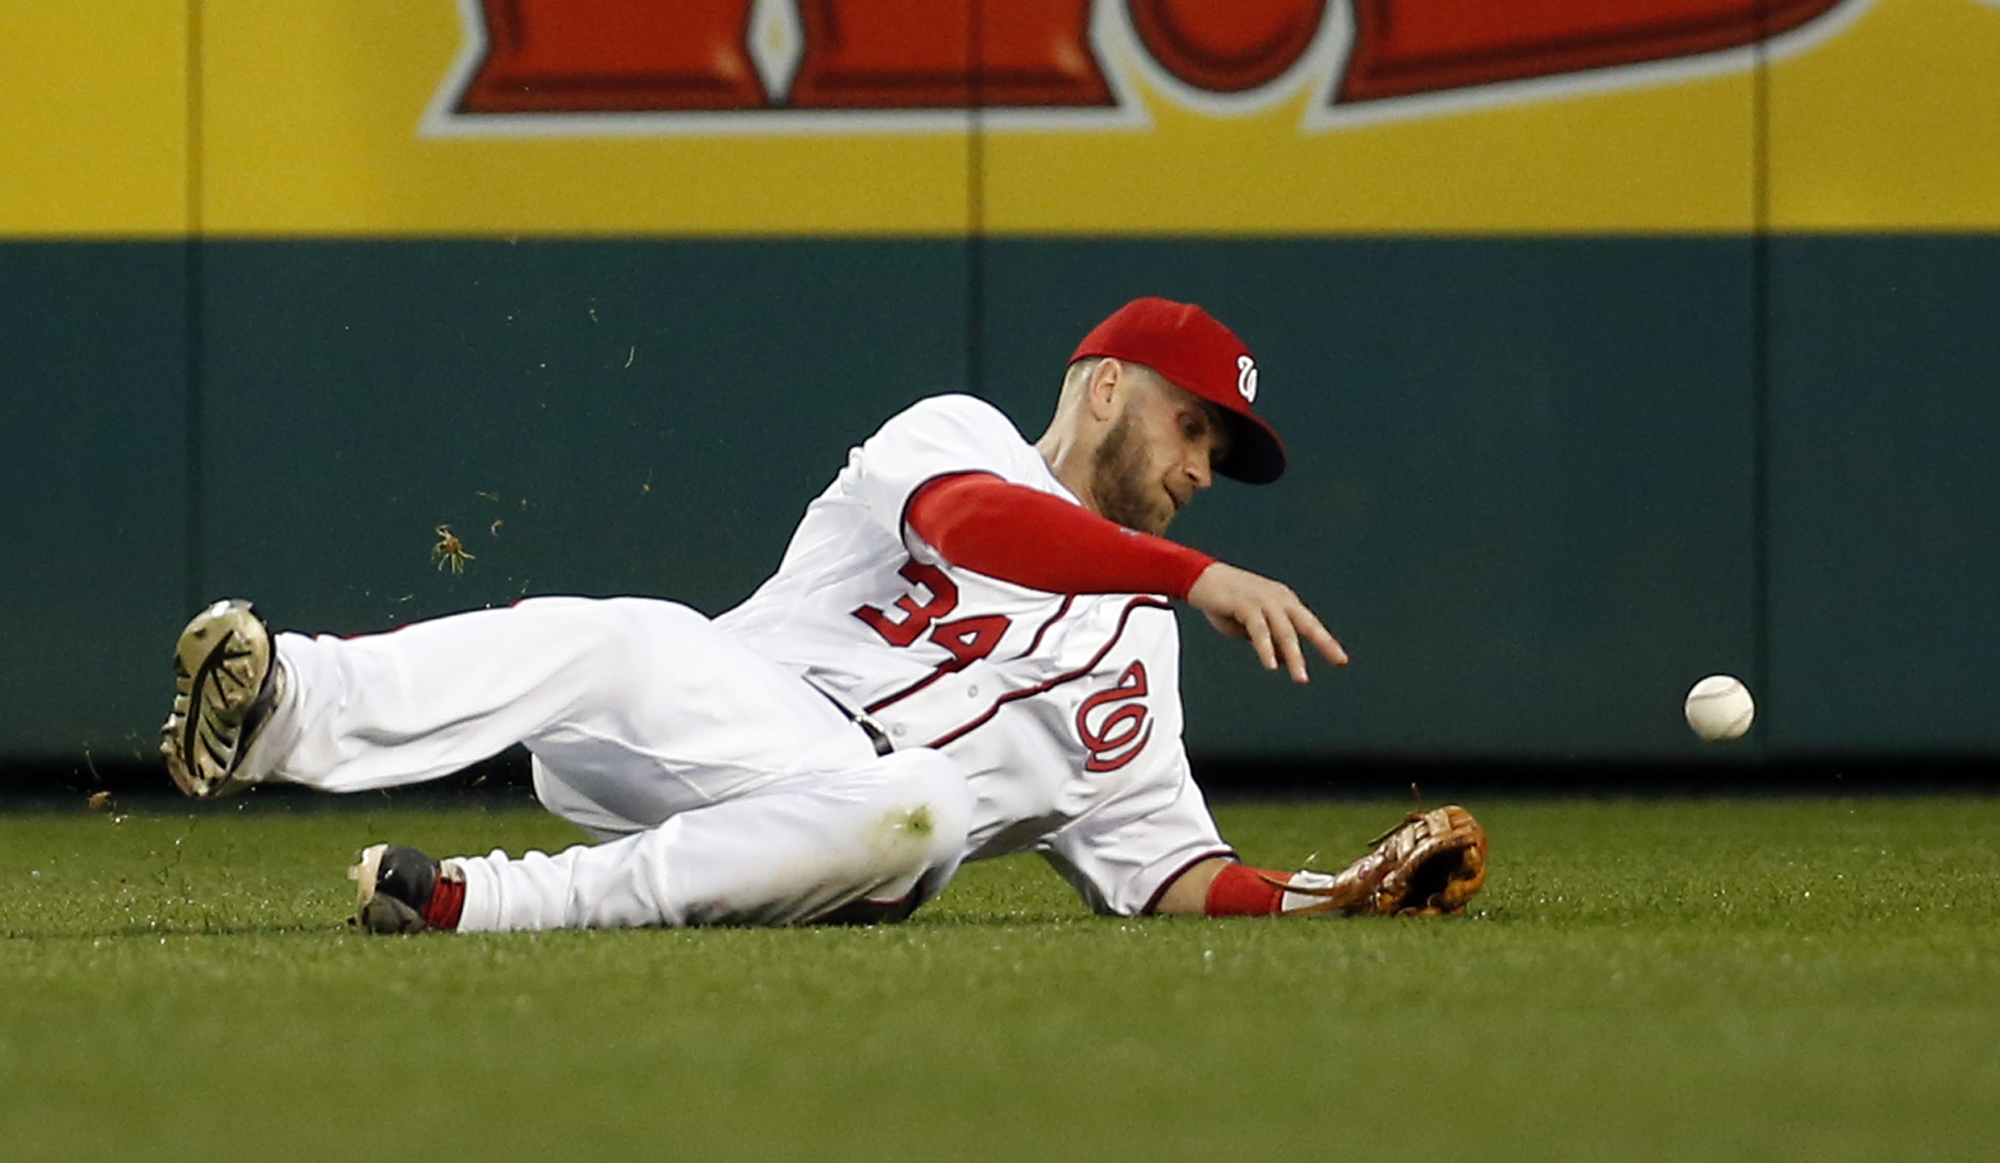 Washington Nationals right fielder Bryce Harper can't catch a ball hit by New York Mets' Curtis Granderson for a single during the first inning of a baseball game at Nationals Park, Monday, May 23, 2016, in Washington. (AP Photo/Alex Brandon)